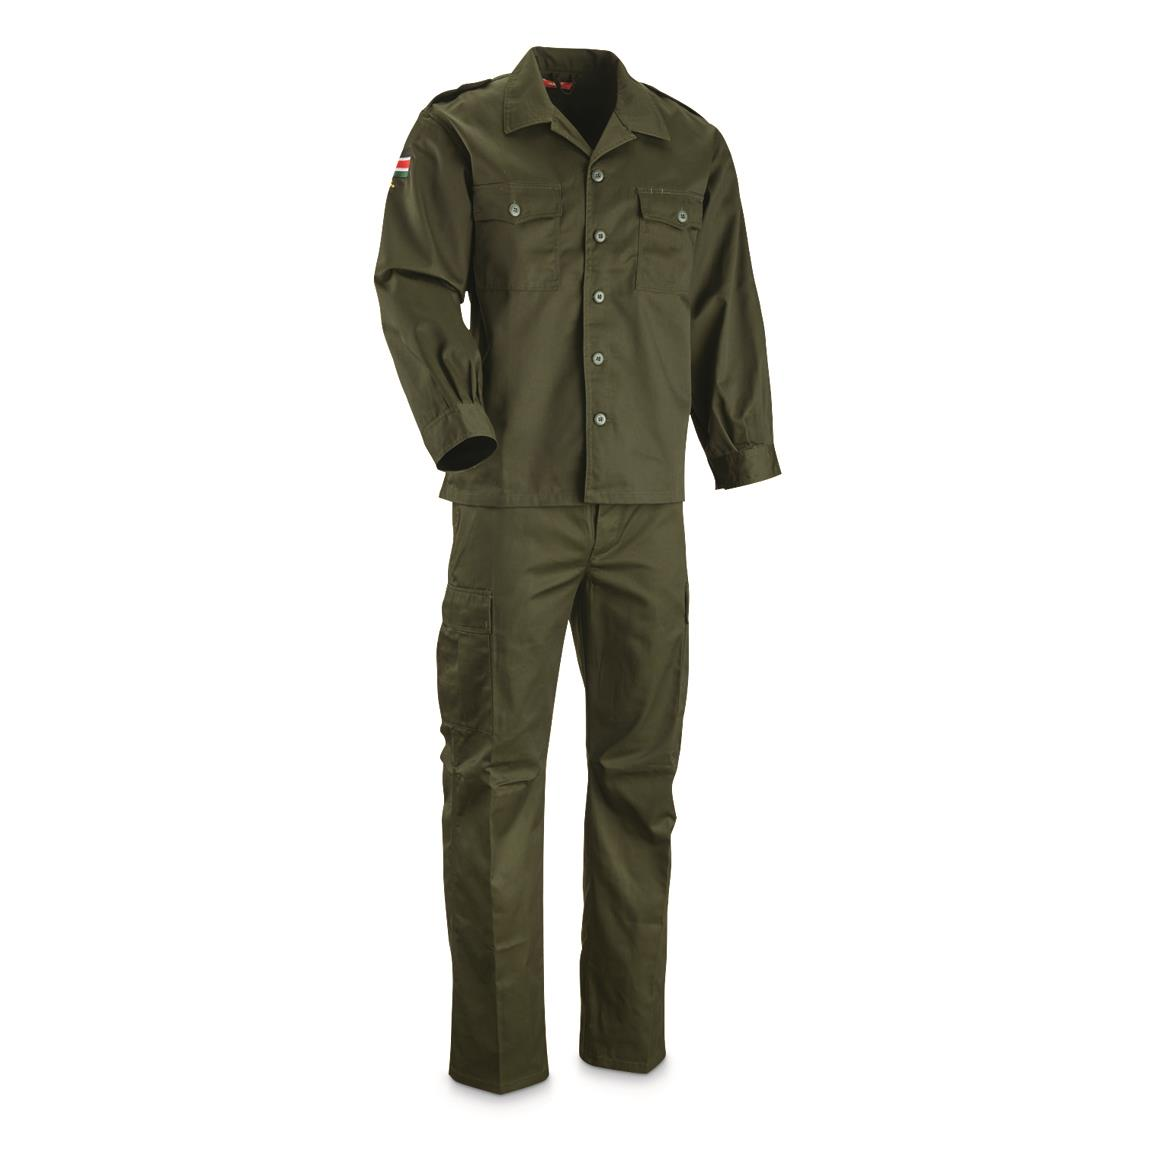 South Sudanese Military Surplus 2 Piece BDU Set, New, Olive Drab